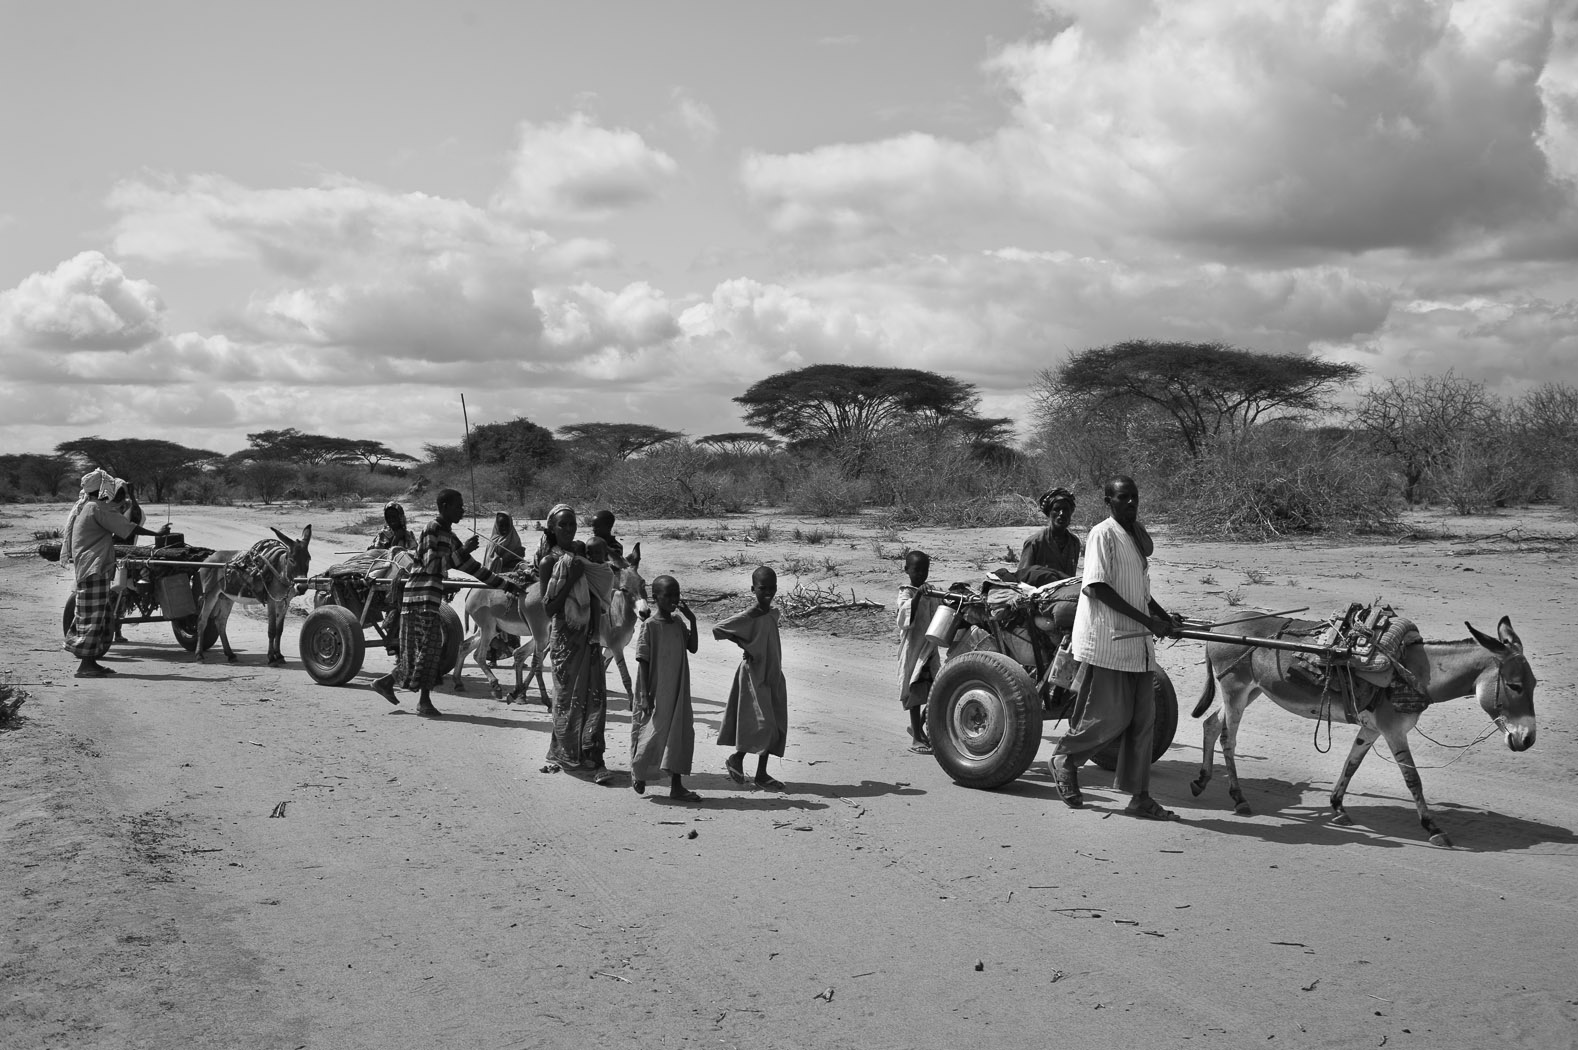 Three families walk the long, dusty road from the Kenyan border with Somalia near Liboi, on their way to the Dadaab refugee camp. They have been walking for over two weeks, and still have several days ahead of them.